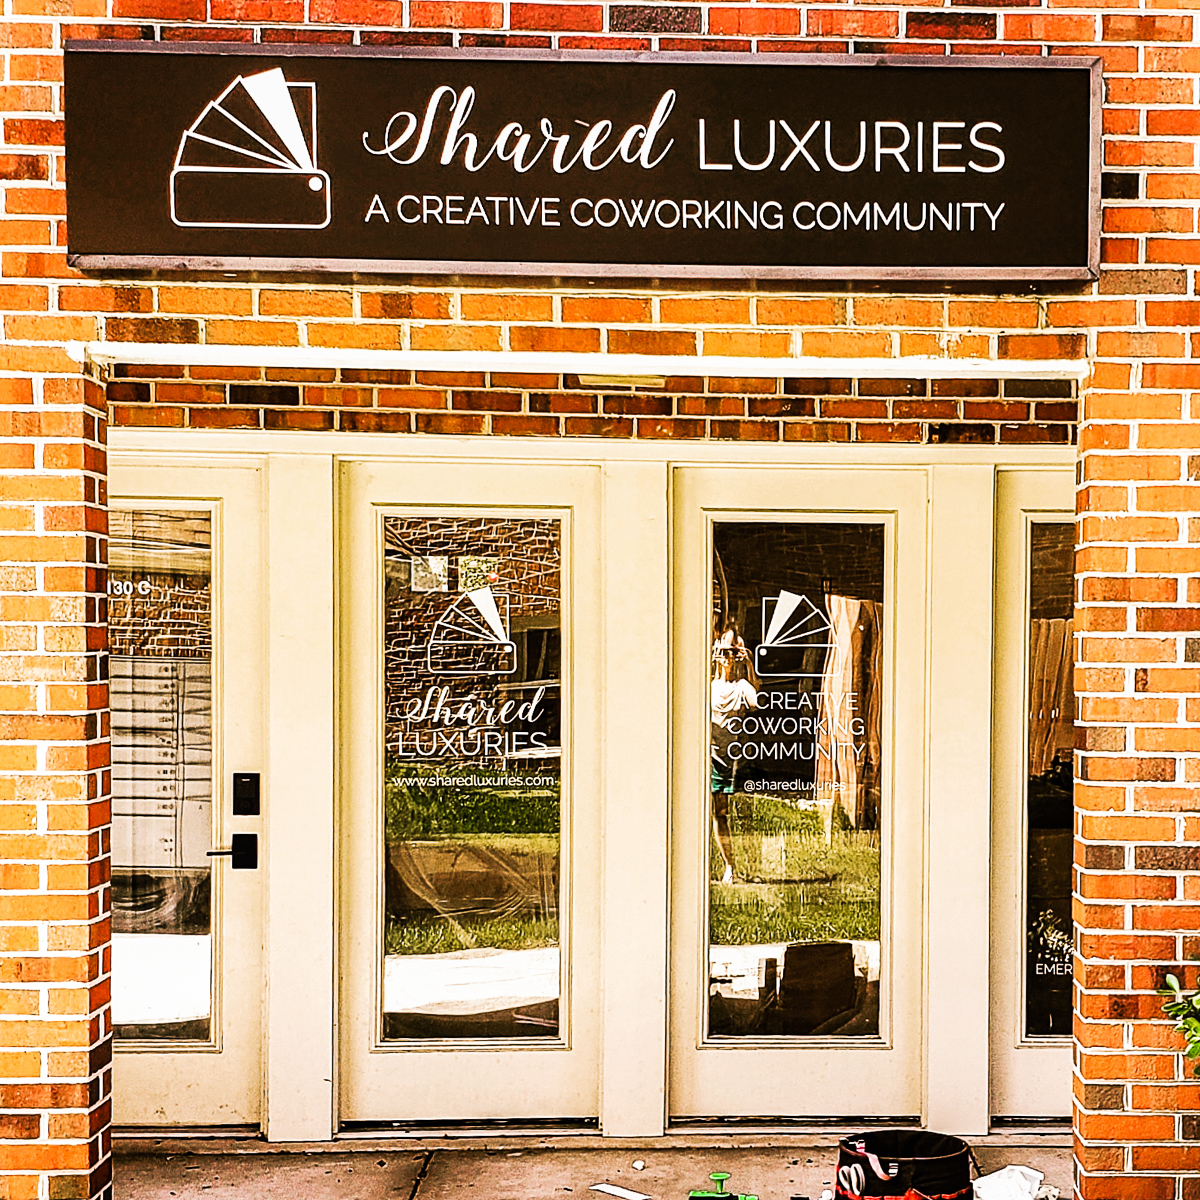 Shared Luxuries coworking community space entrance